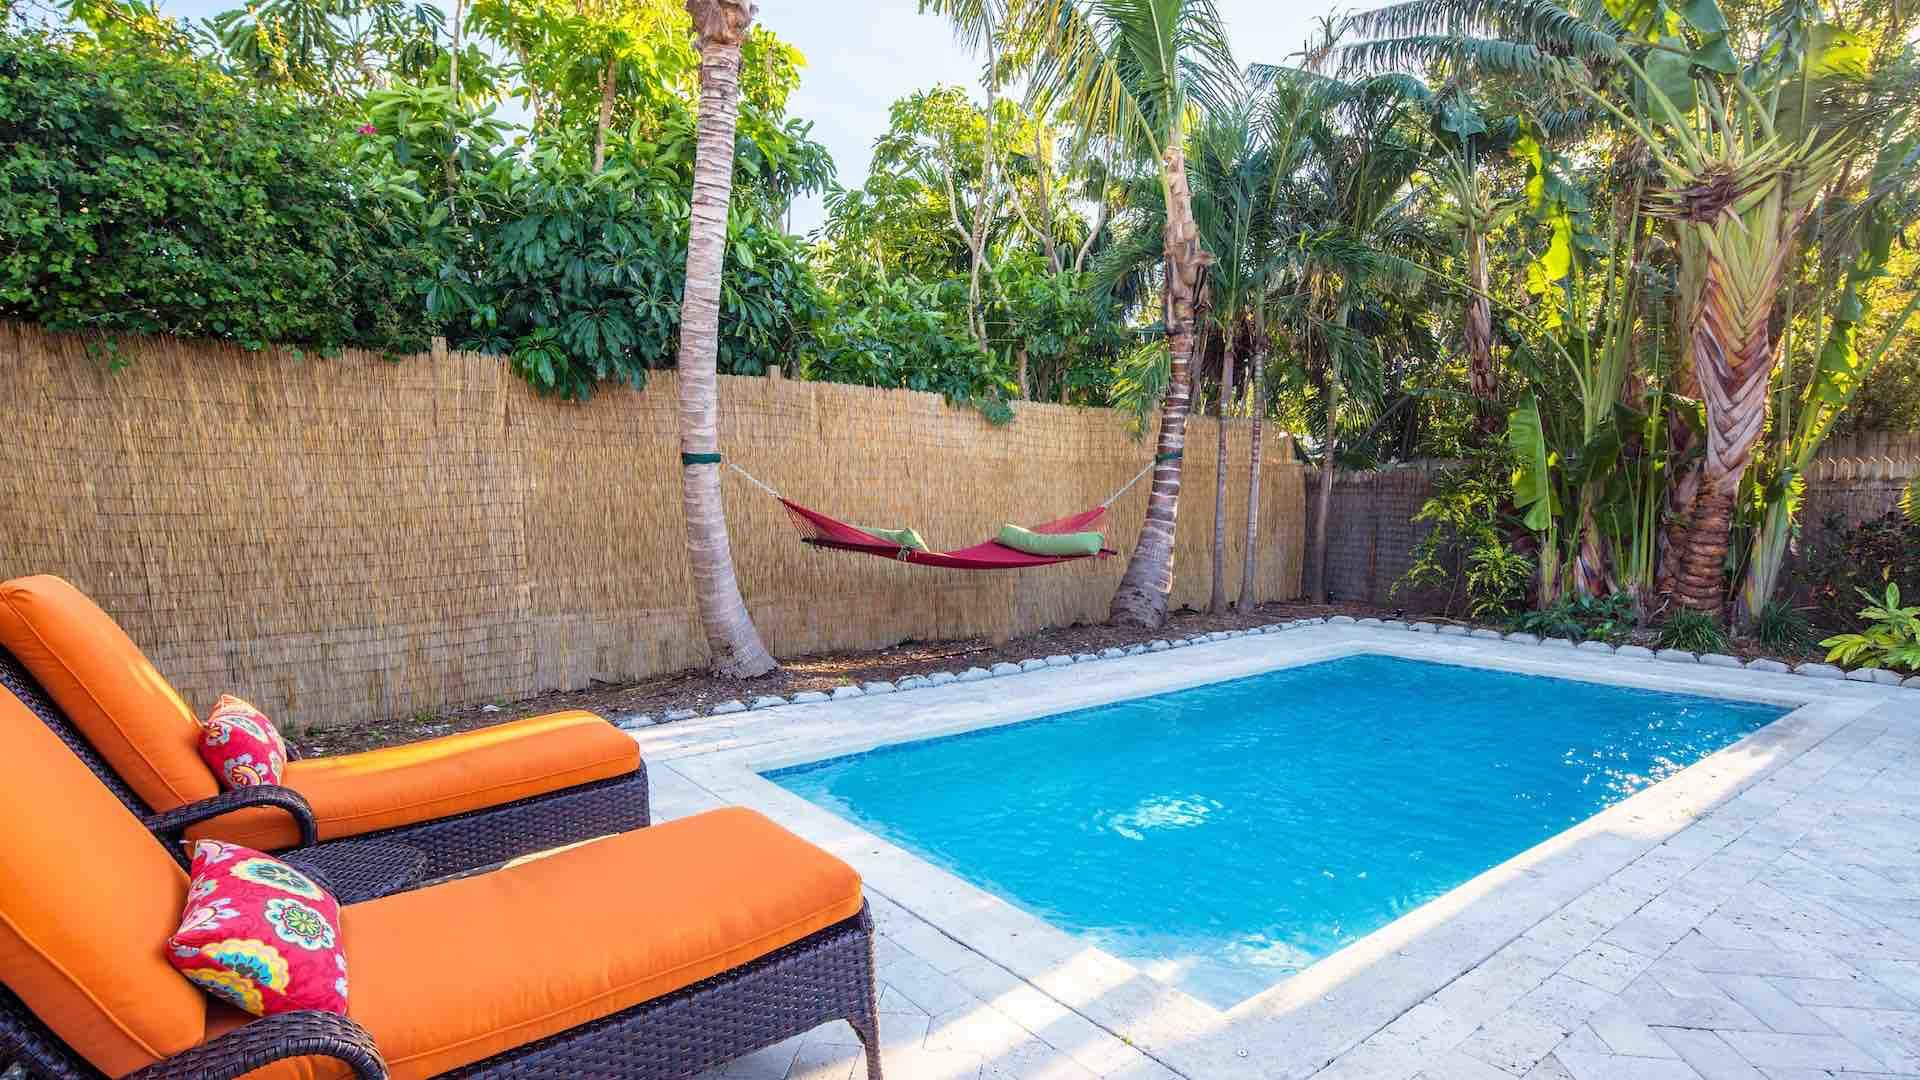 The back yard is completely private and surrounded by lush vegetation...